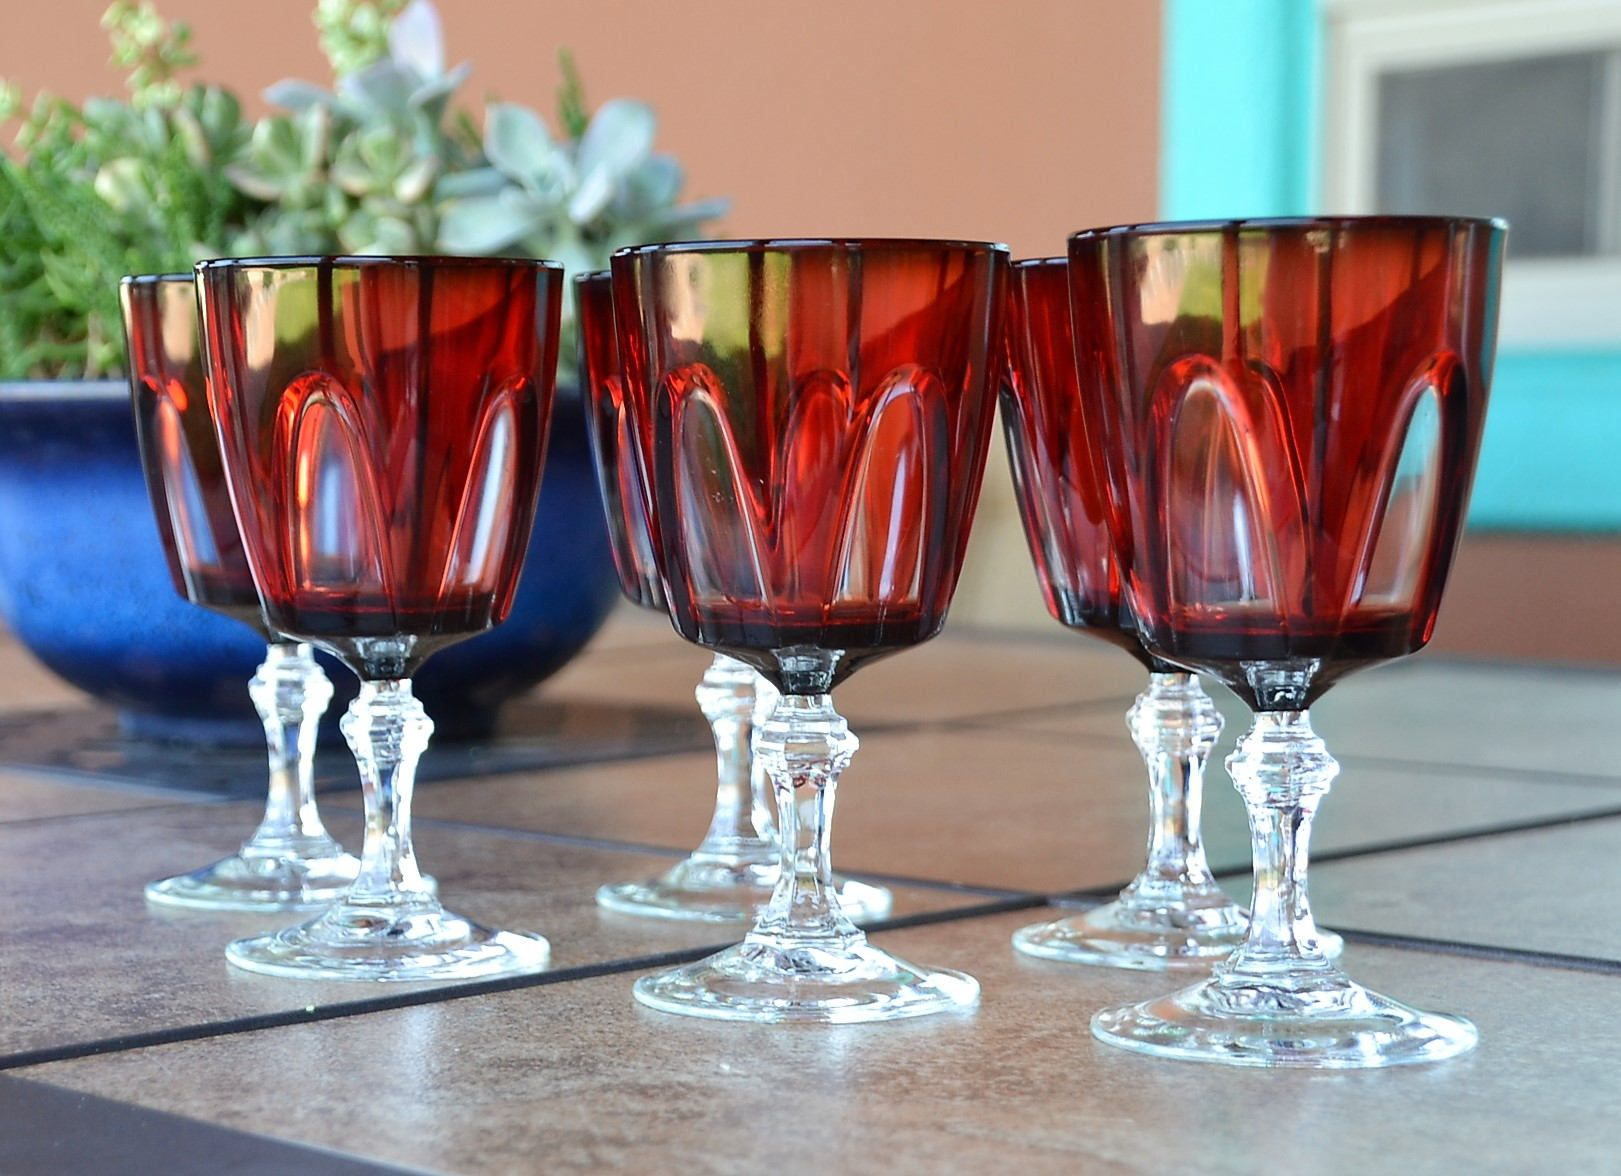 6 Cristal D Arques Durand Red Gothic Arches Glasses Etsy Red Gothic Gothic Wine Red Wine Glasses